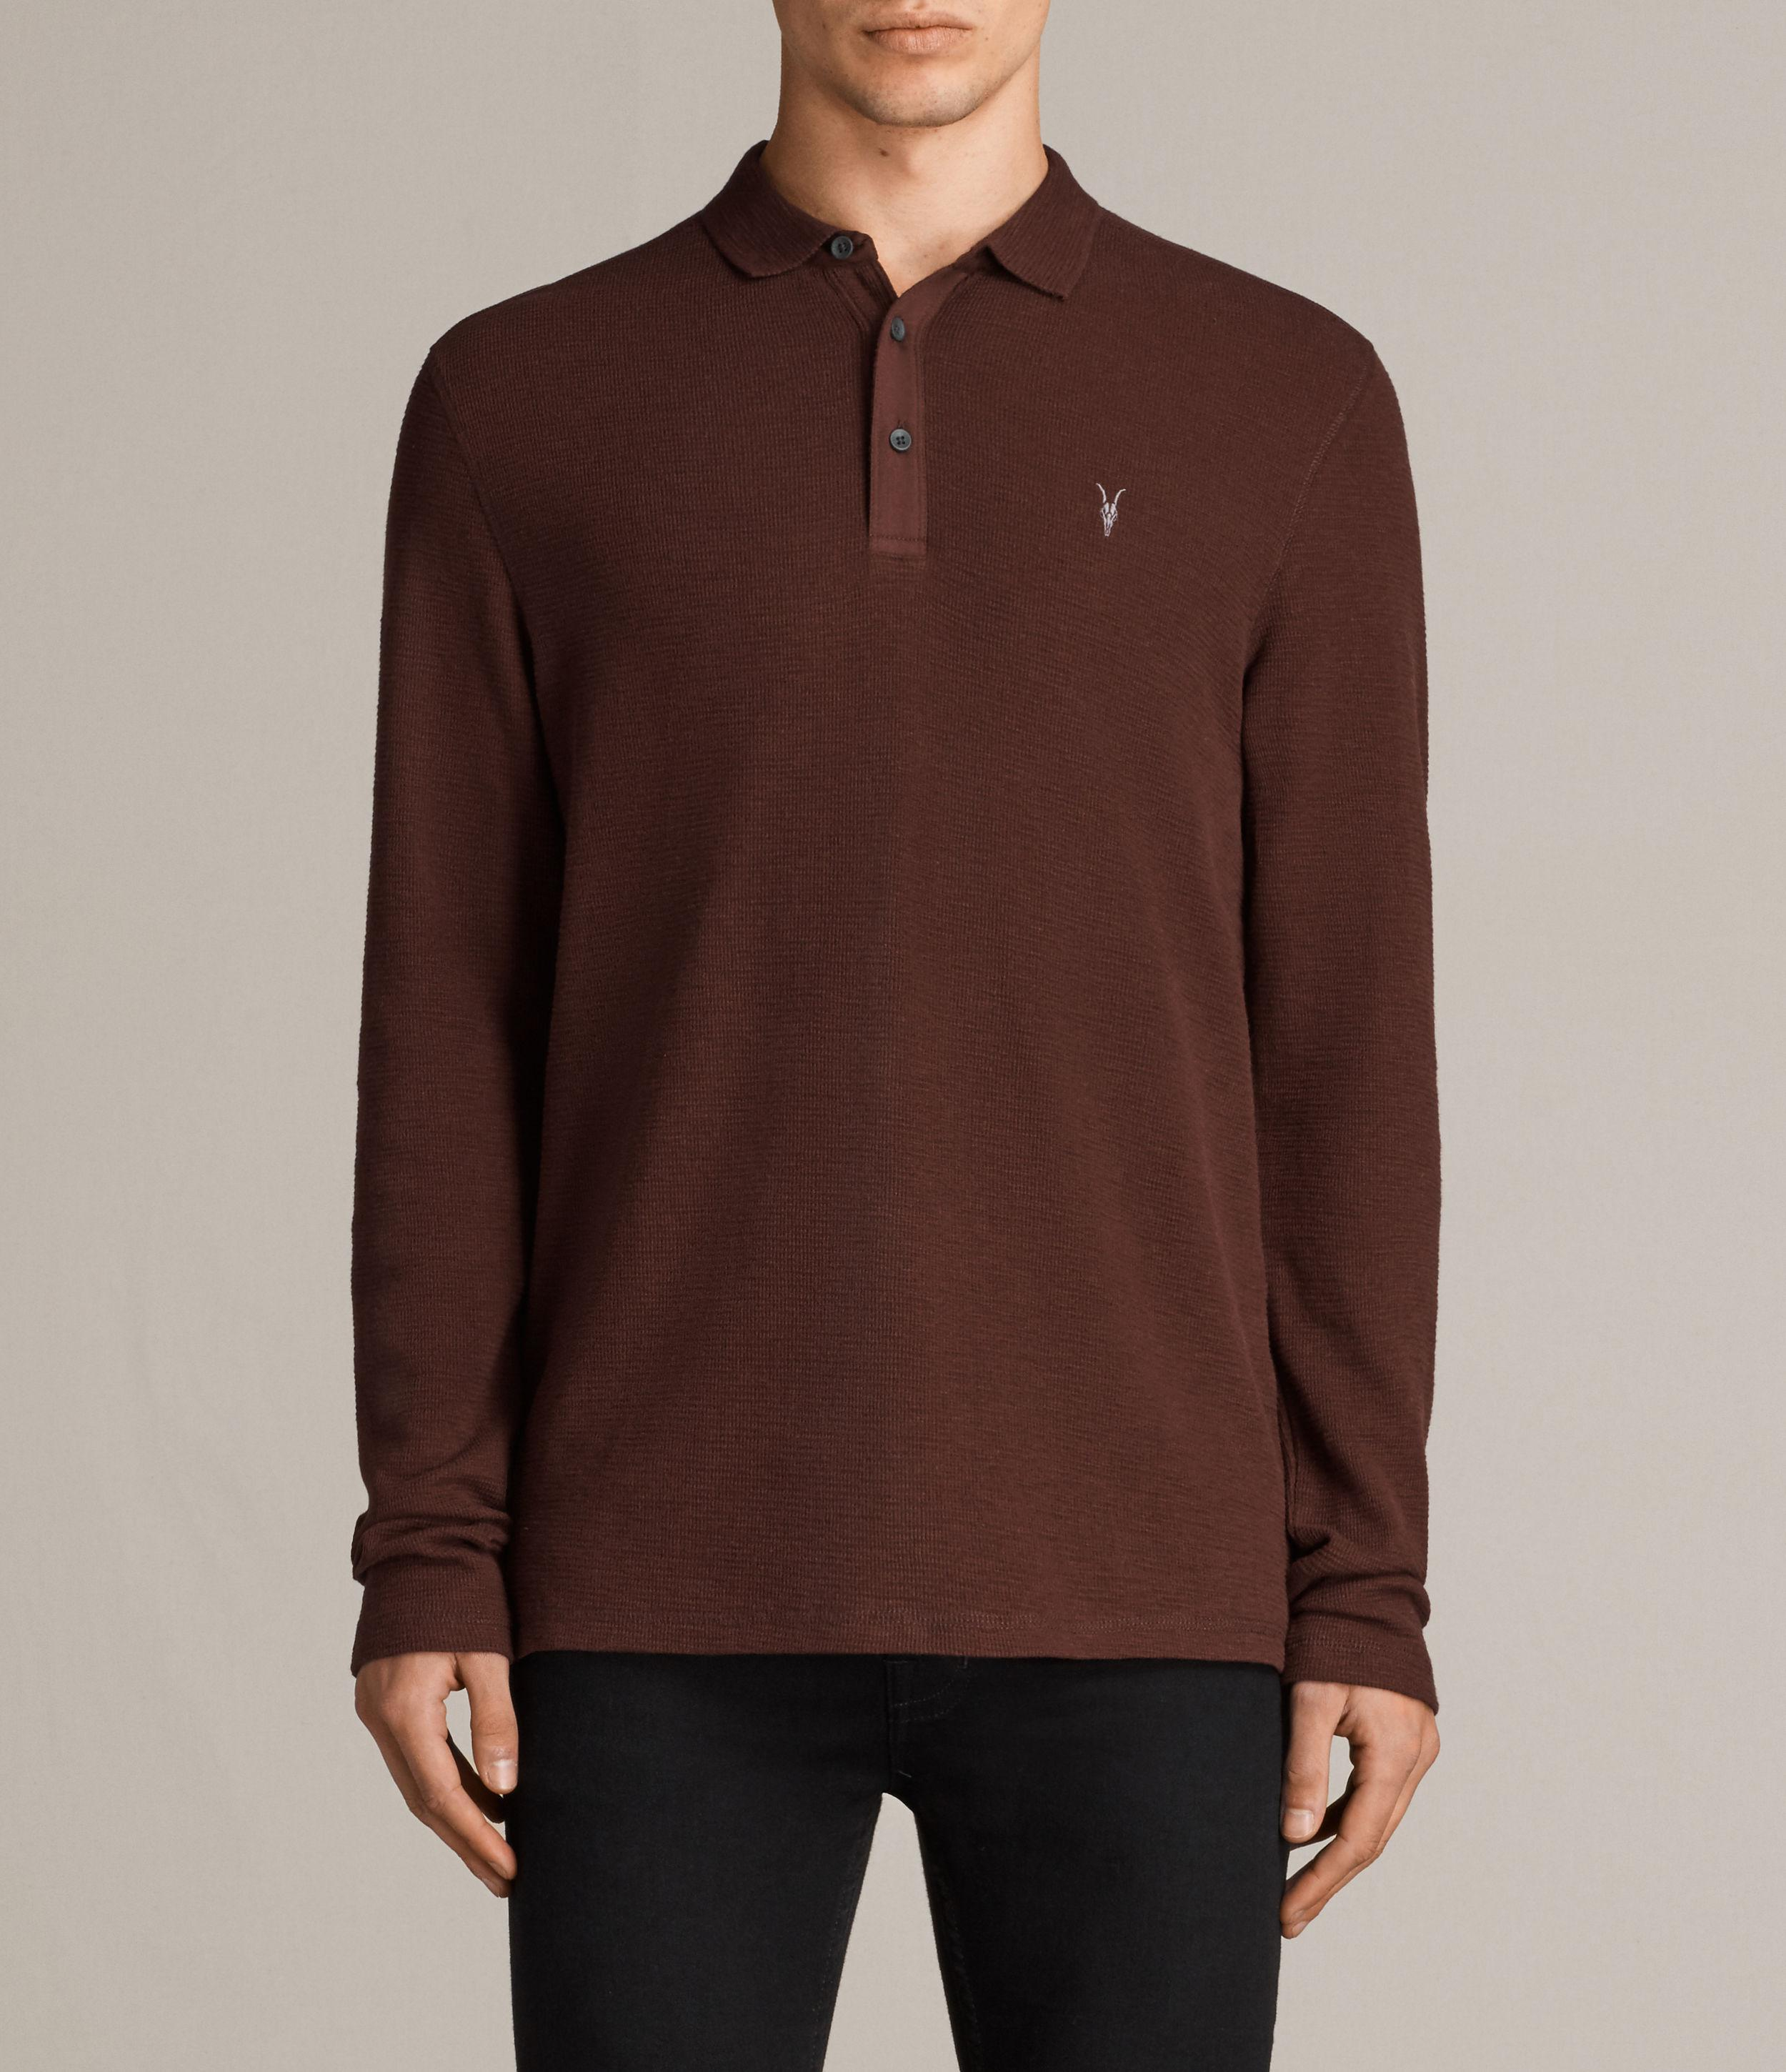 Allsaints Clash Long Sleeve Polo Shirt In Brown For Men Lyst